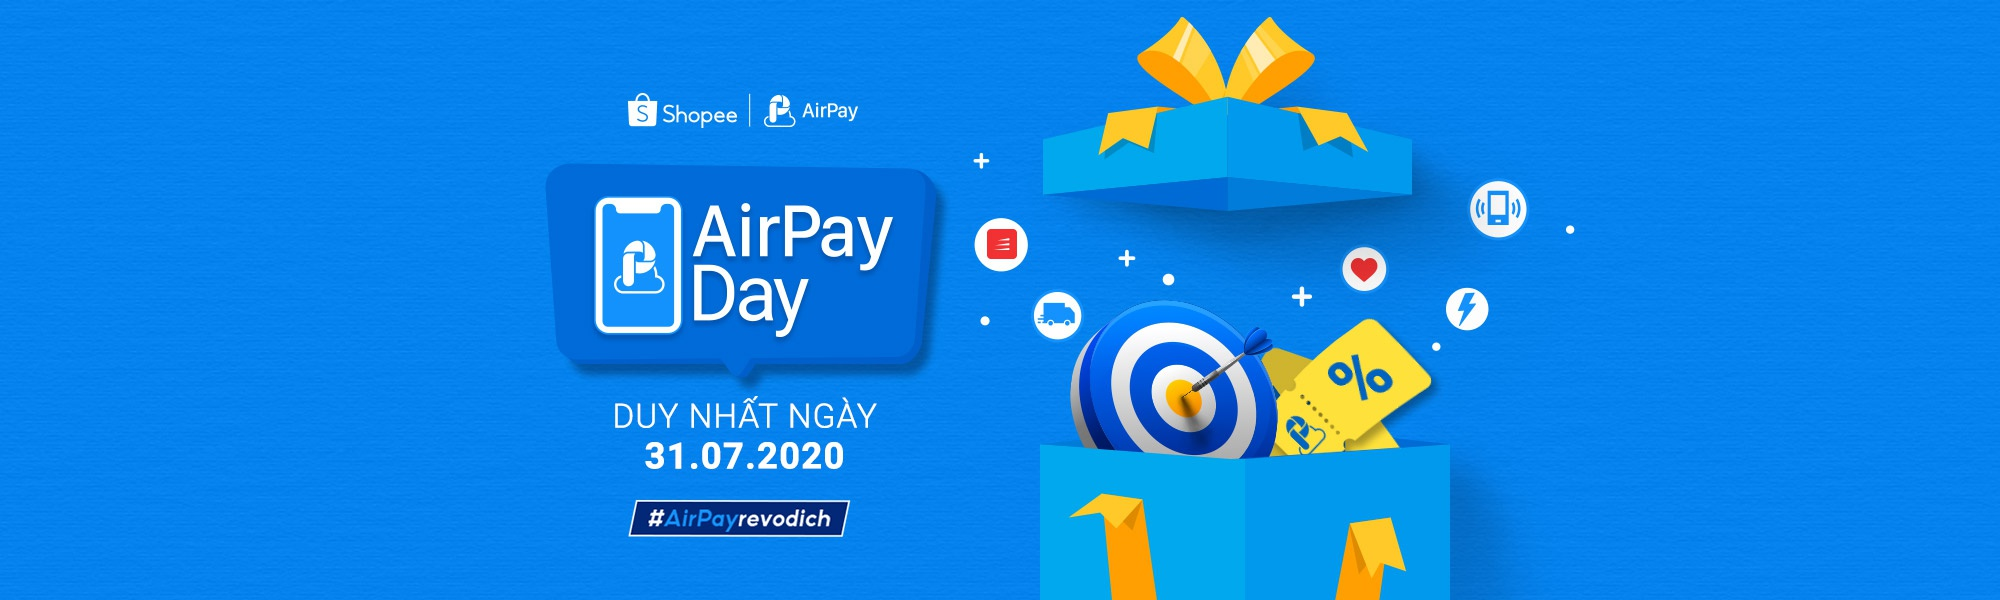 airpay-day-re-vo-dich